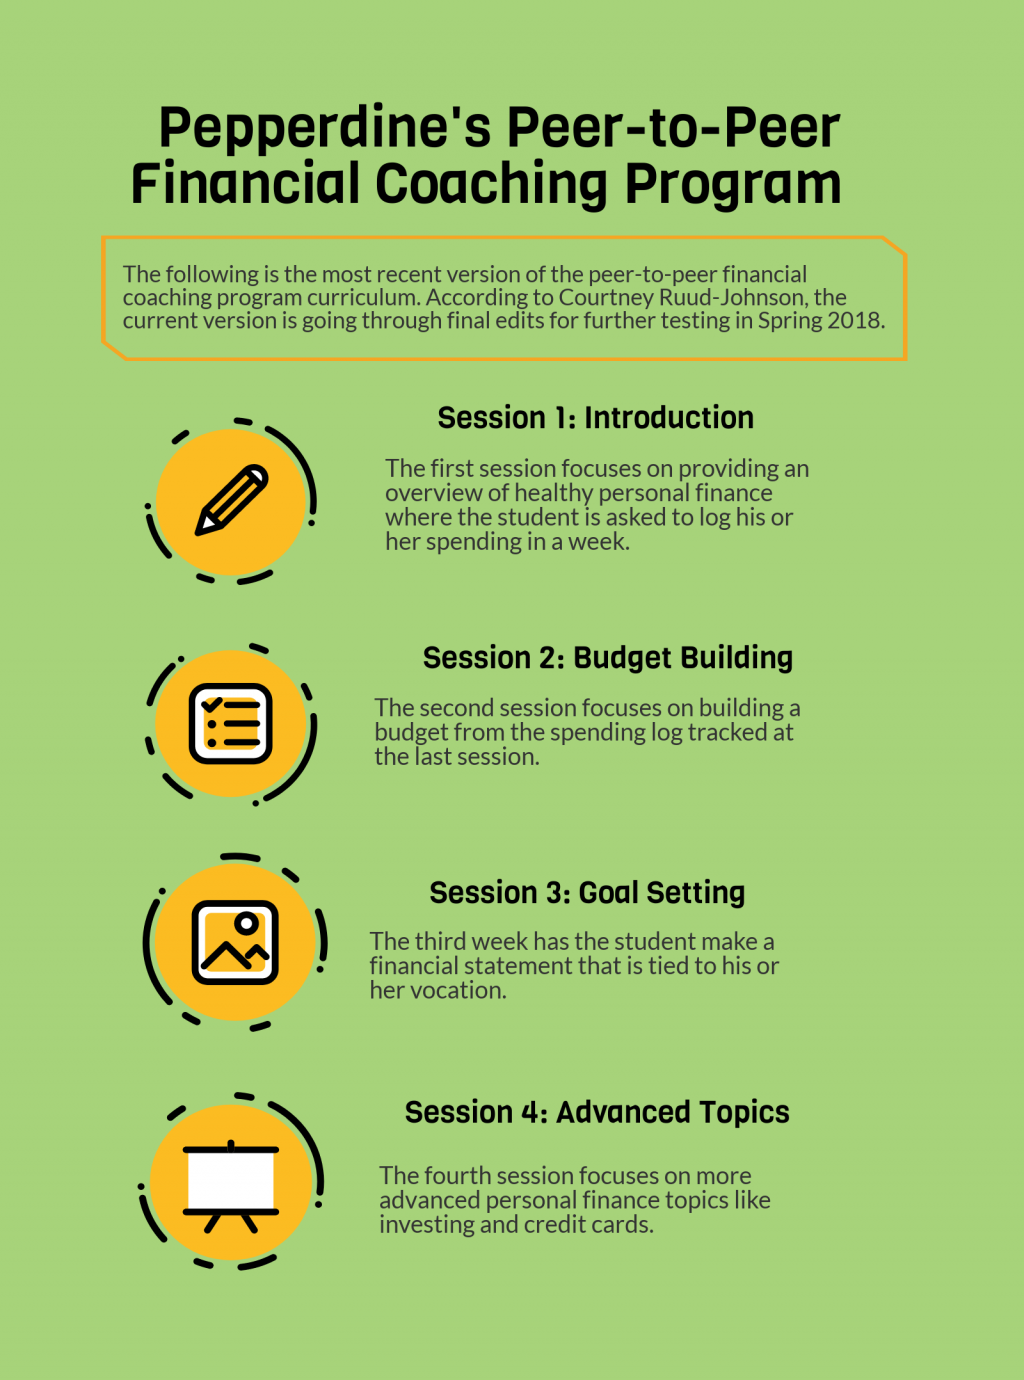 financial-coach_26669486 (1).png